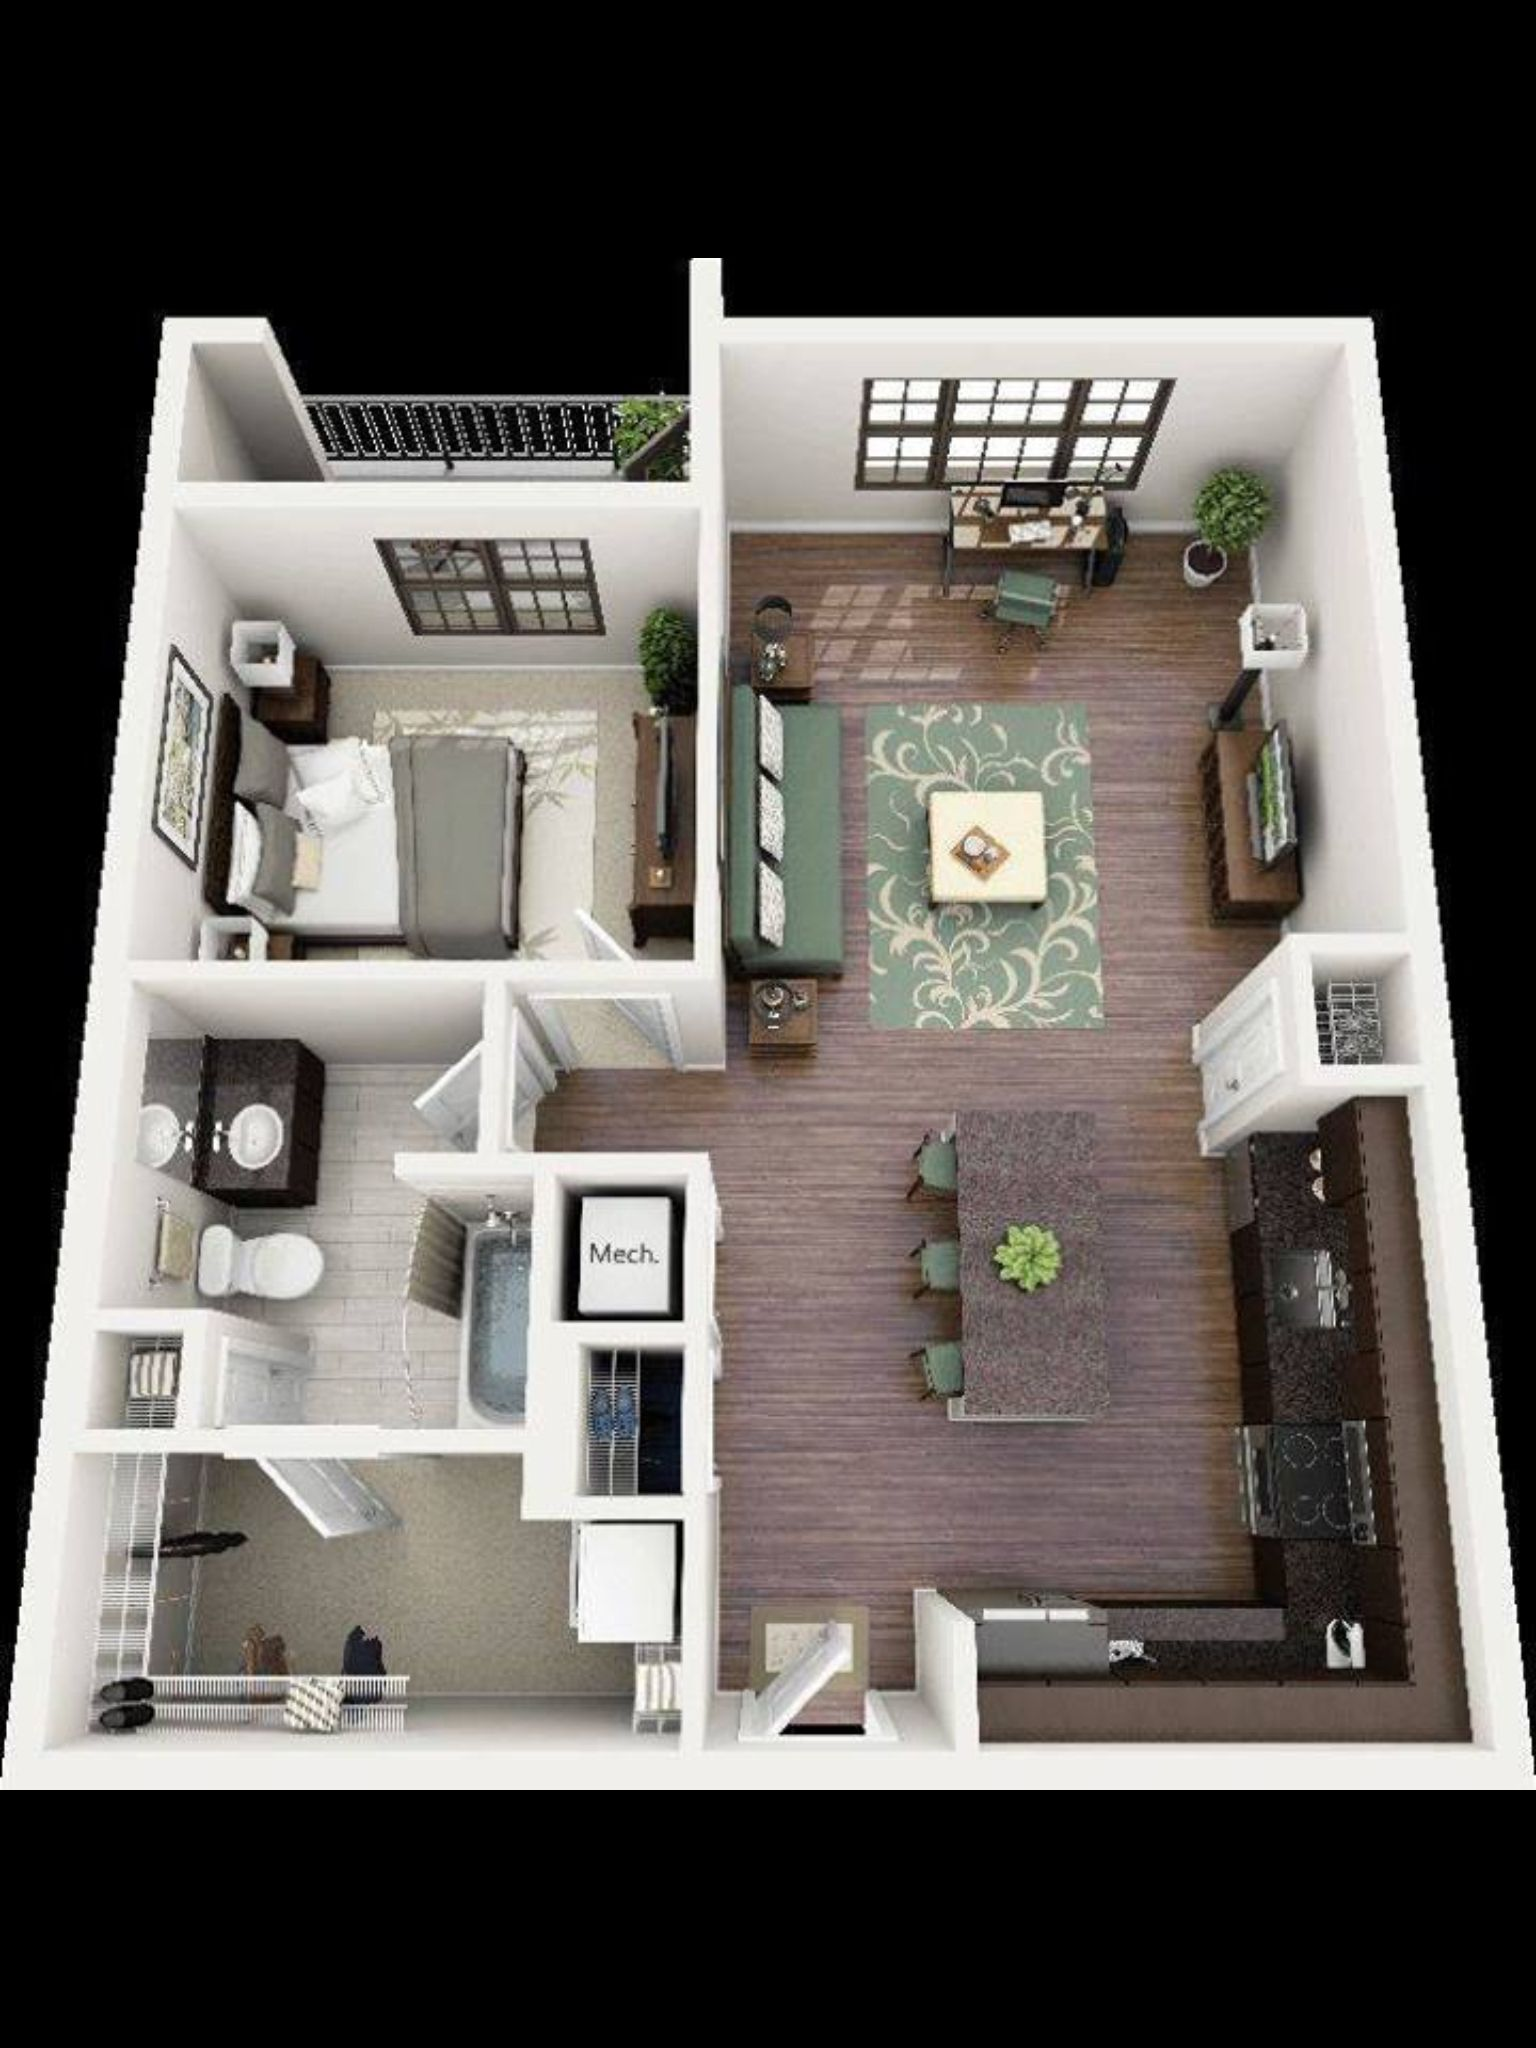 998760c17a2c6f727fdefad24153388d - 11+ Indian Small House Design 2 Bedroom Gif